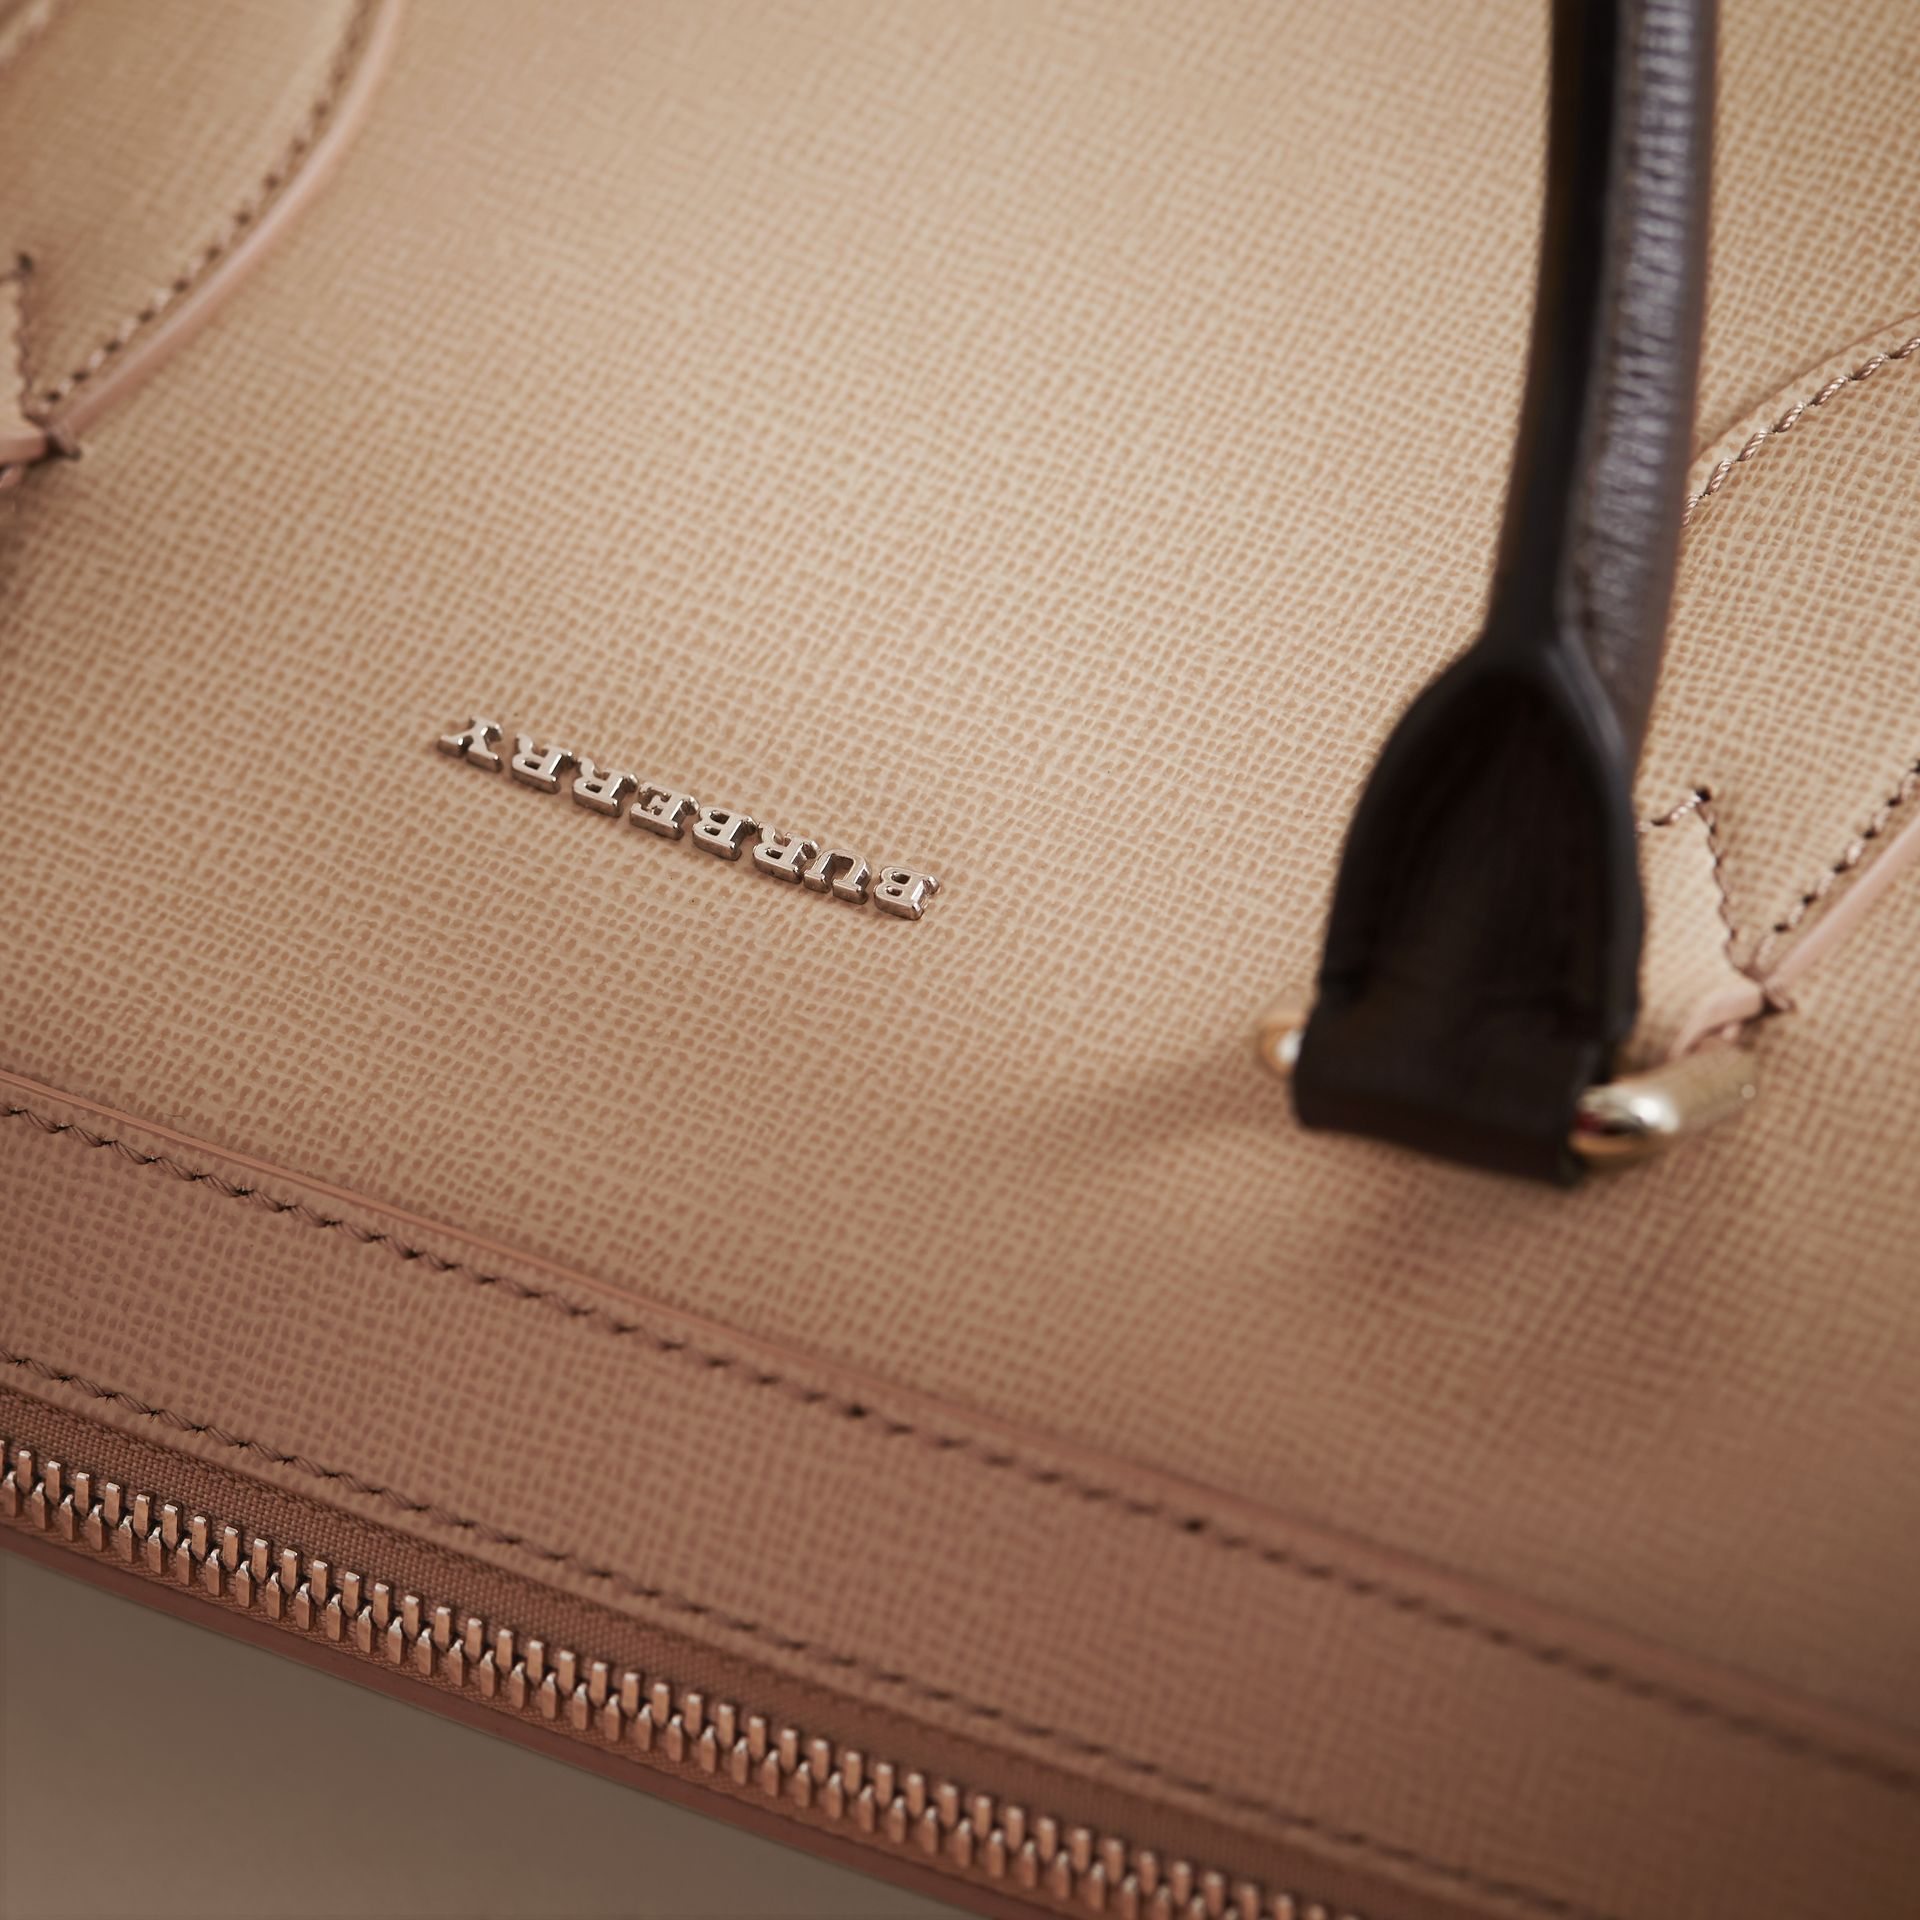 London Leather Briefcase in Honey/bitter Chocolate - Men | Burberry United States - gallery image 7